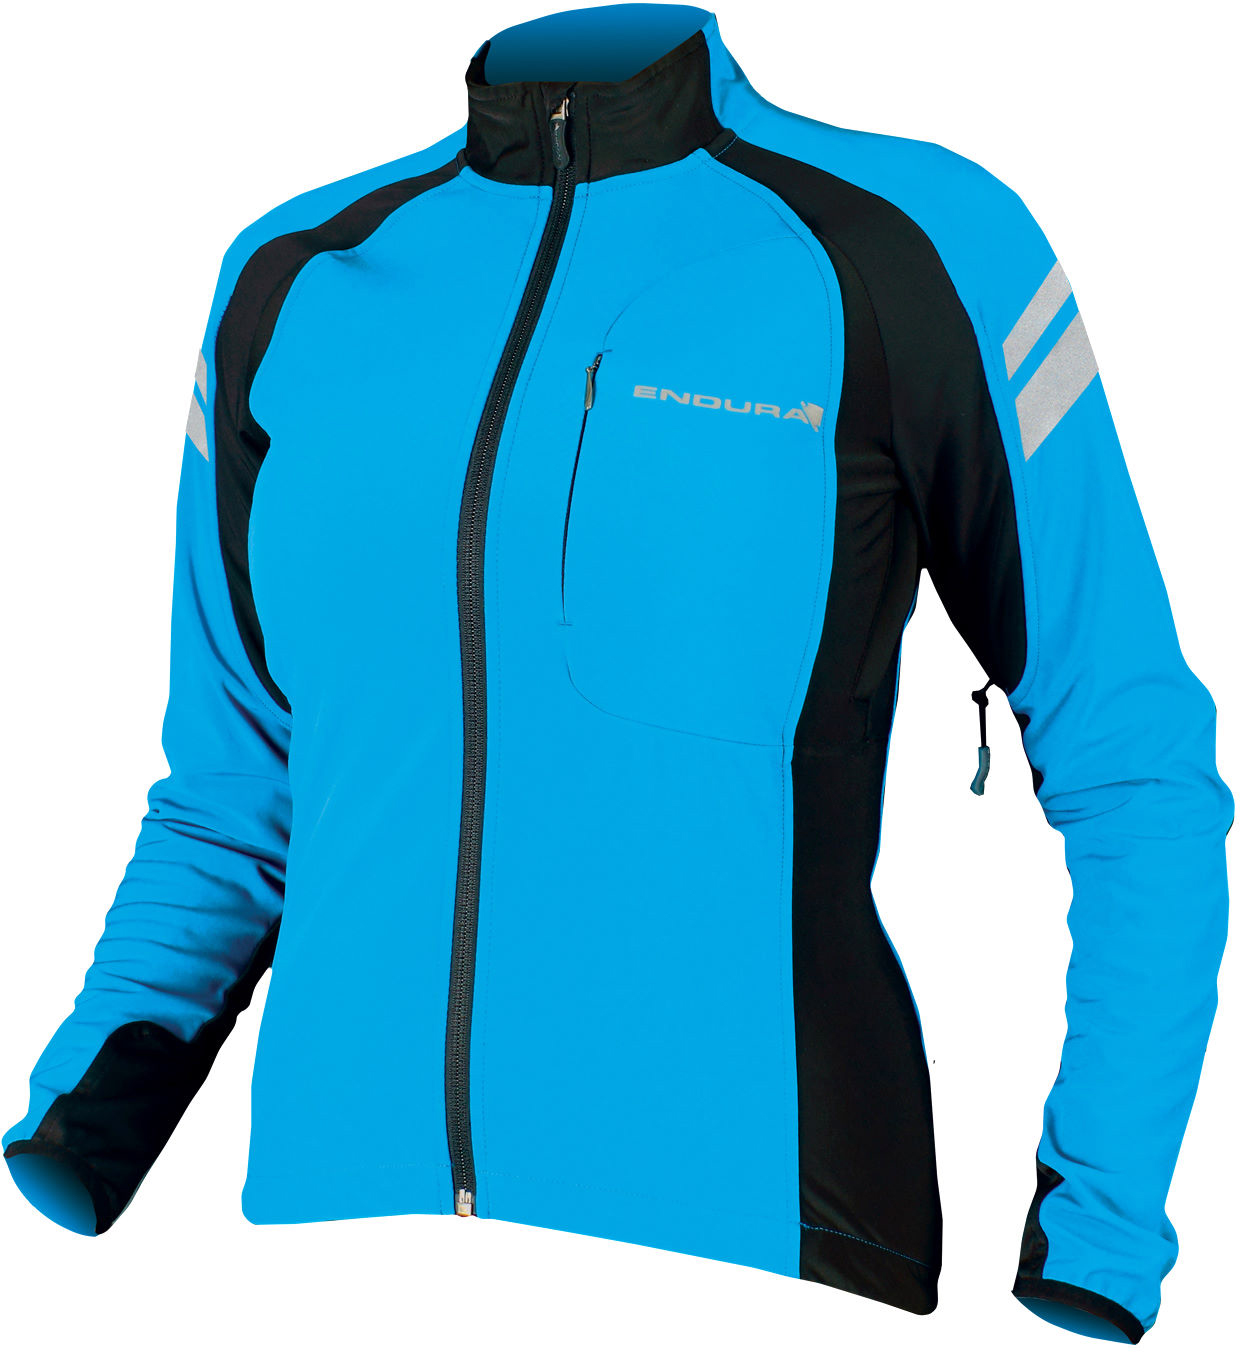 Endura Windchill Jacket - red | Jackets